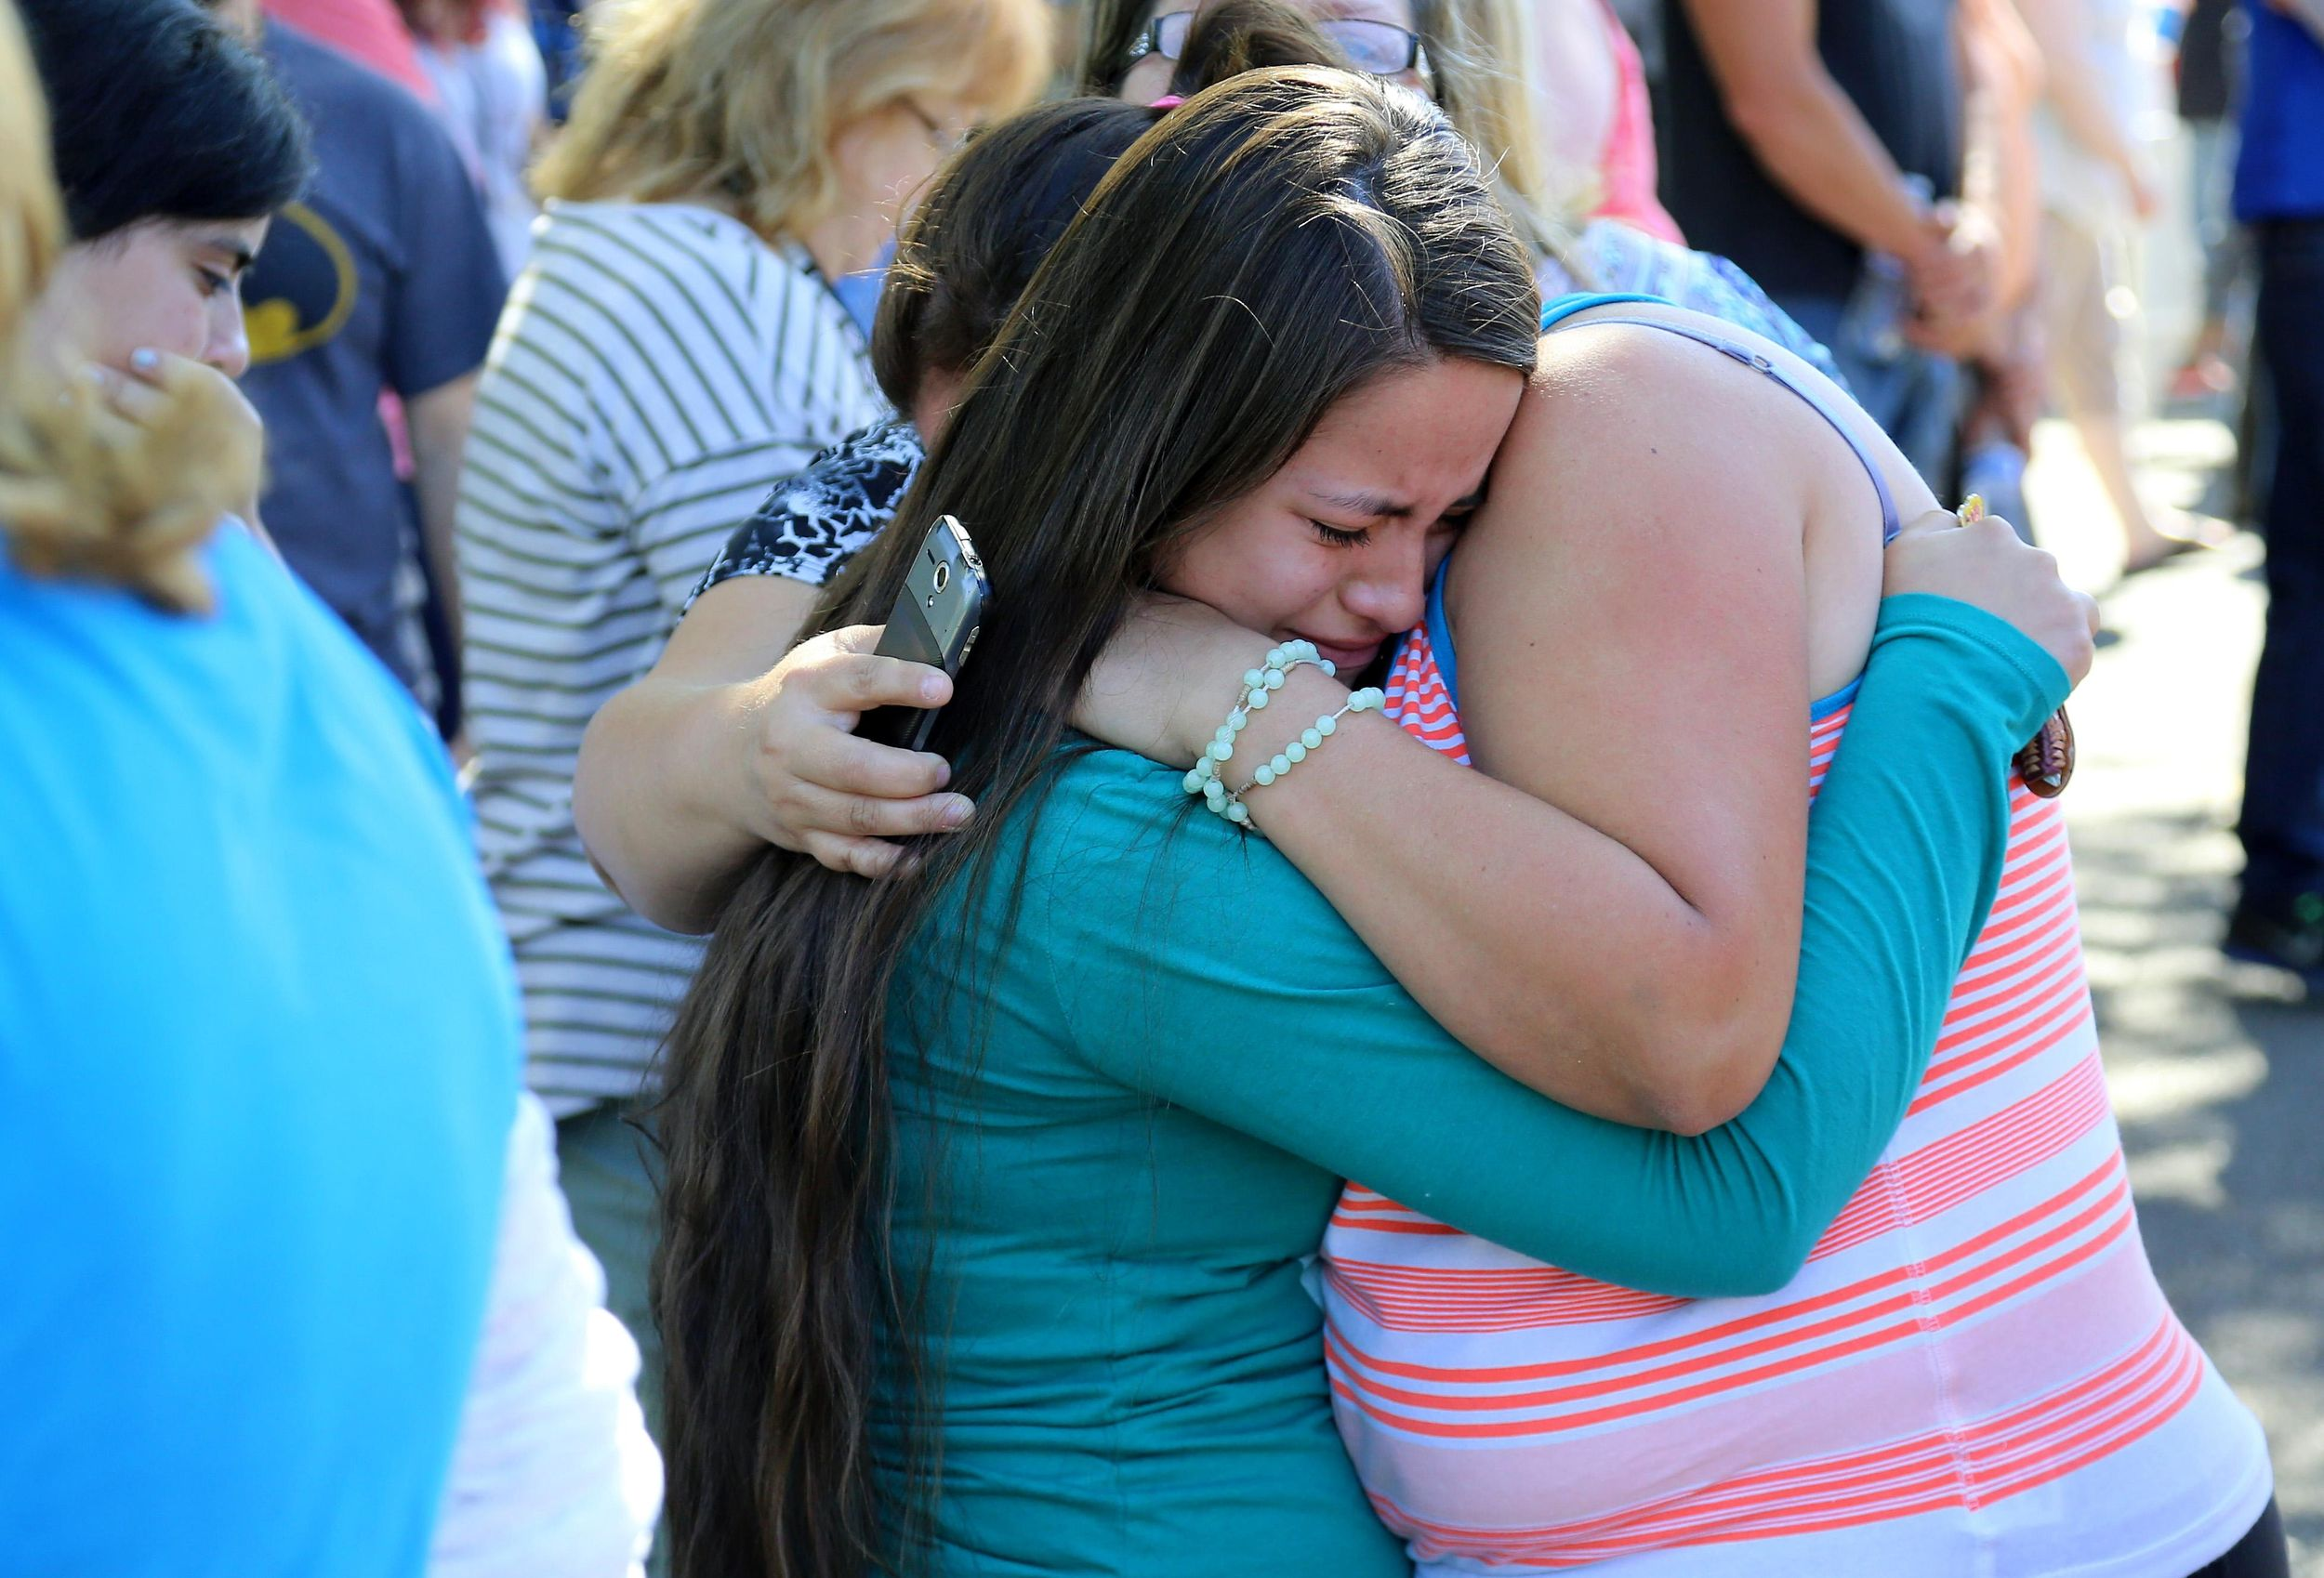 Gunman Opens Fire At Oregon College At Least 10 Killed The Spokesman Review